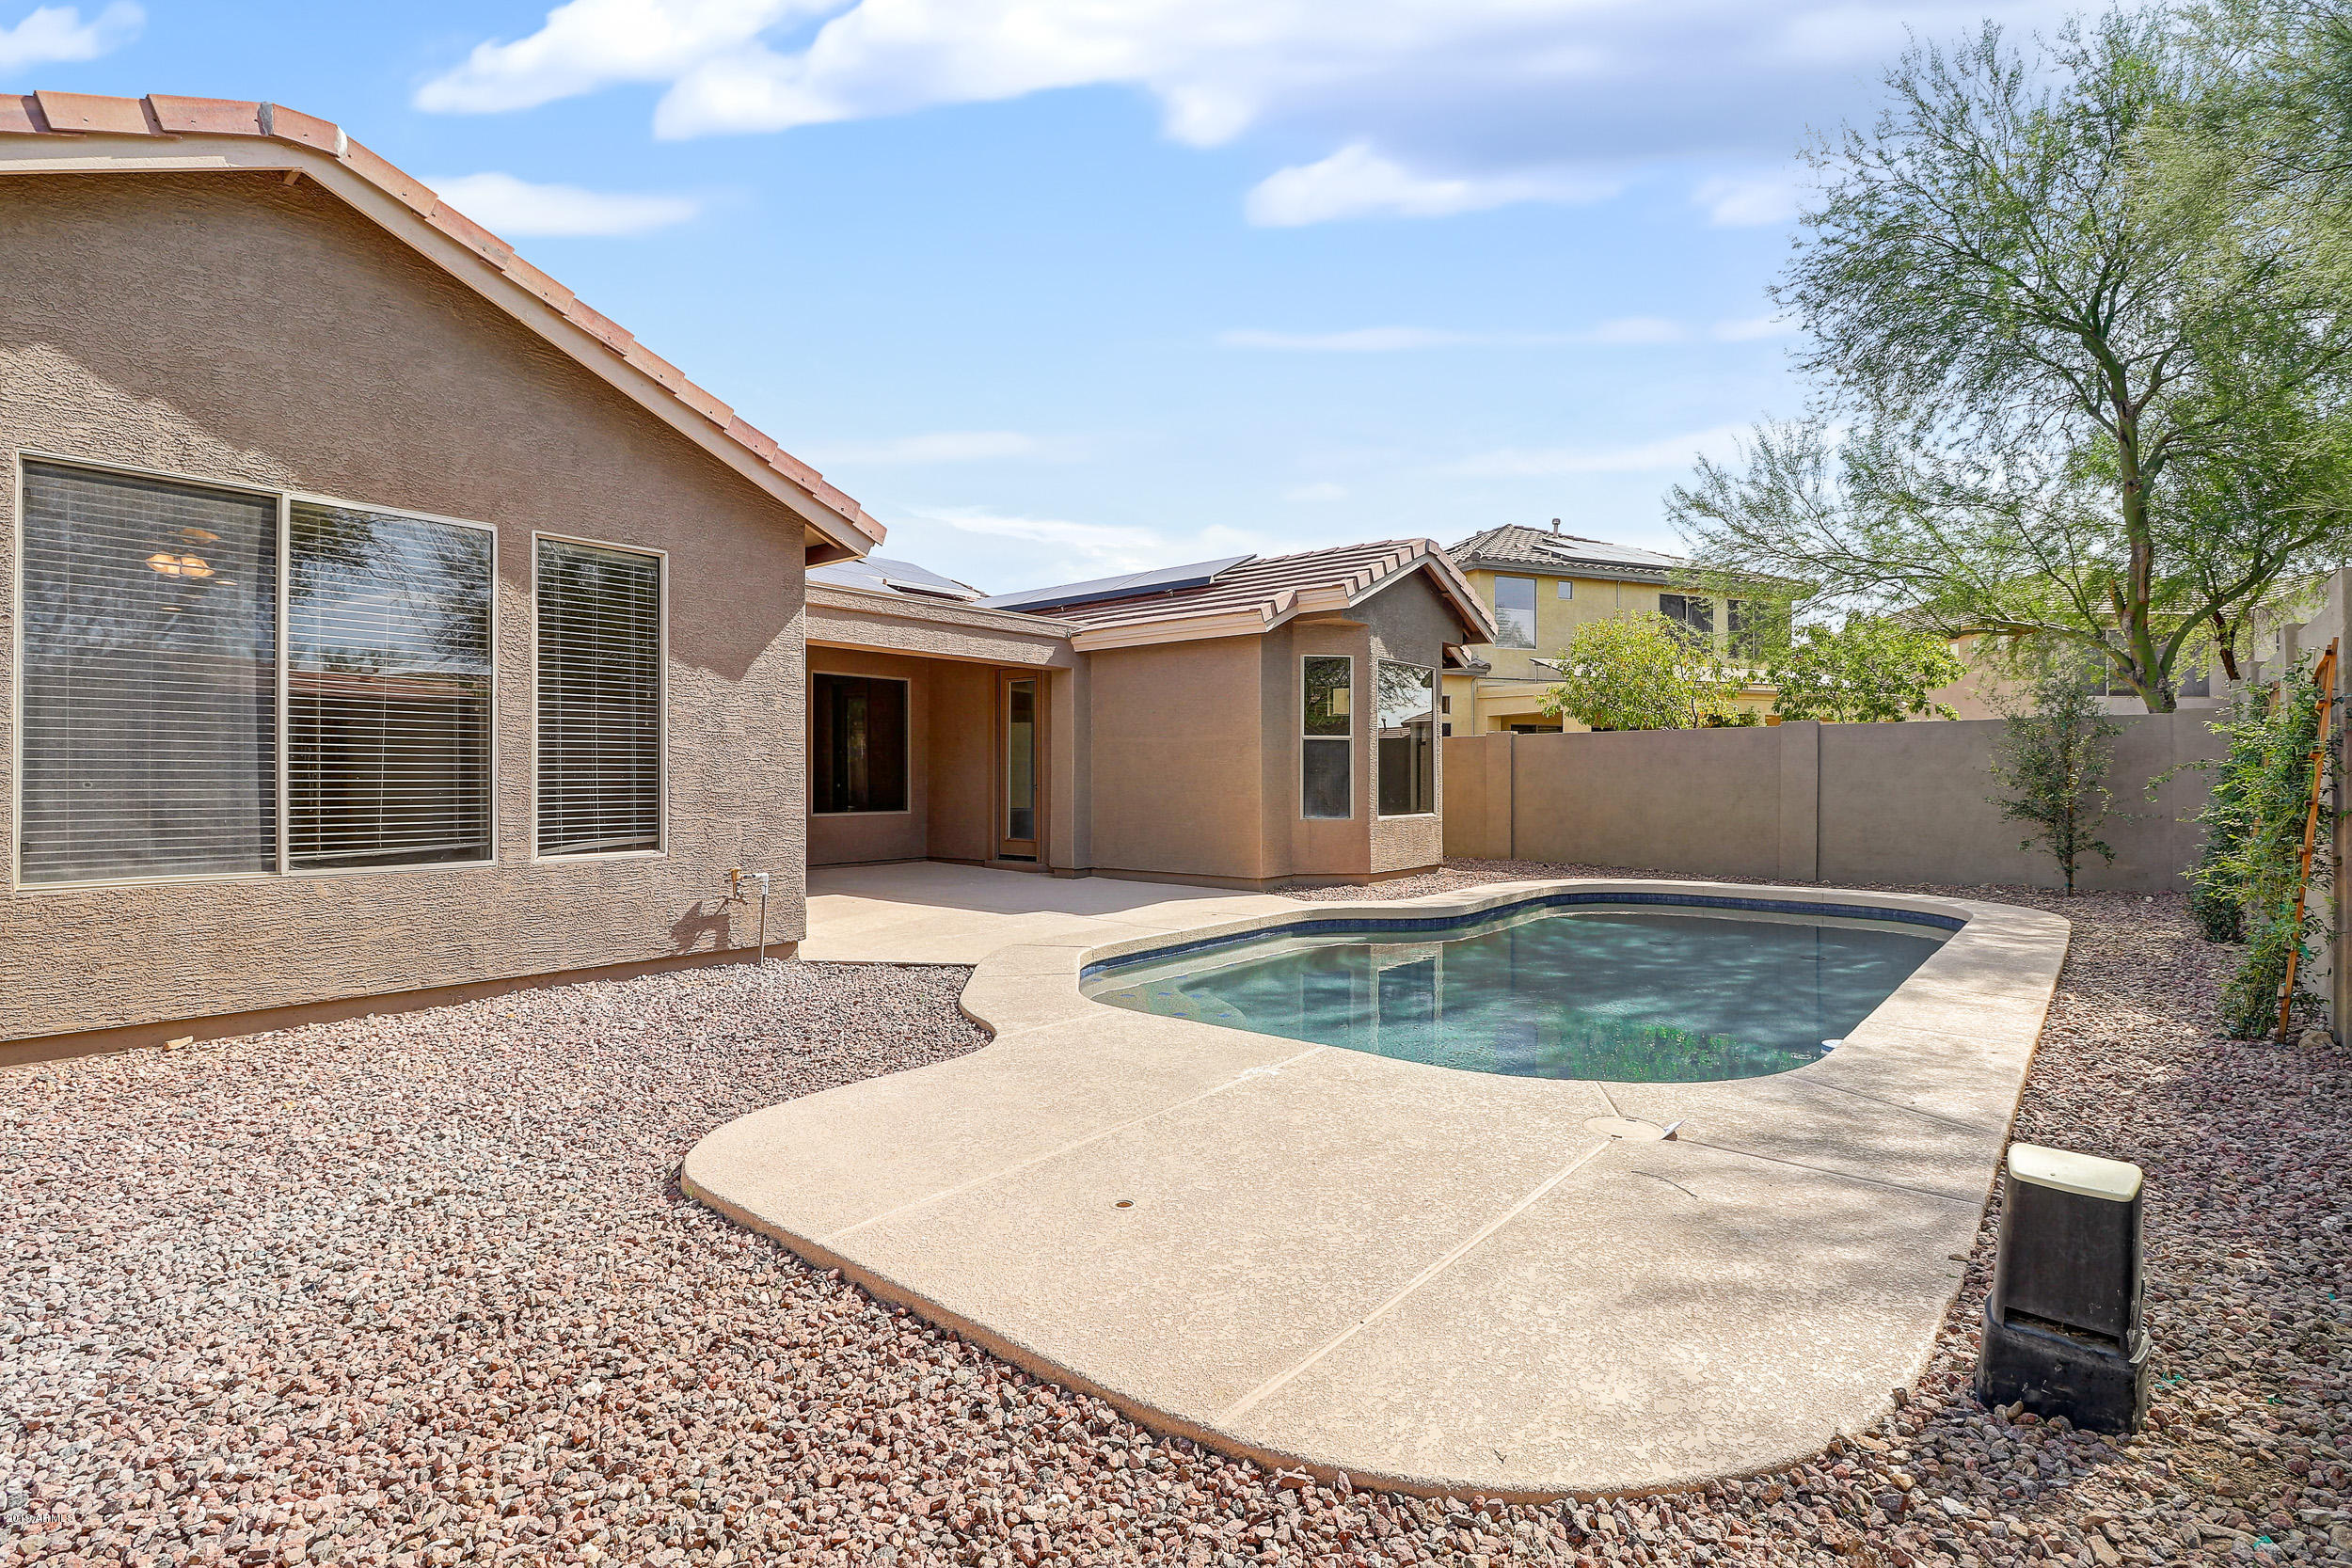 MLS 5968708 2835 W WALDEN Way, Anthem, AZ 85086 Anthem AZ Eco-Friendly